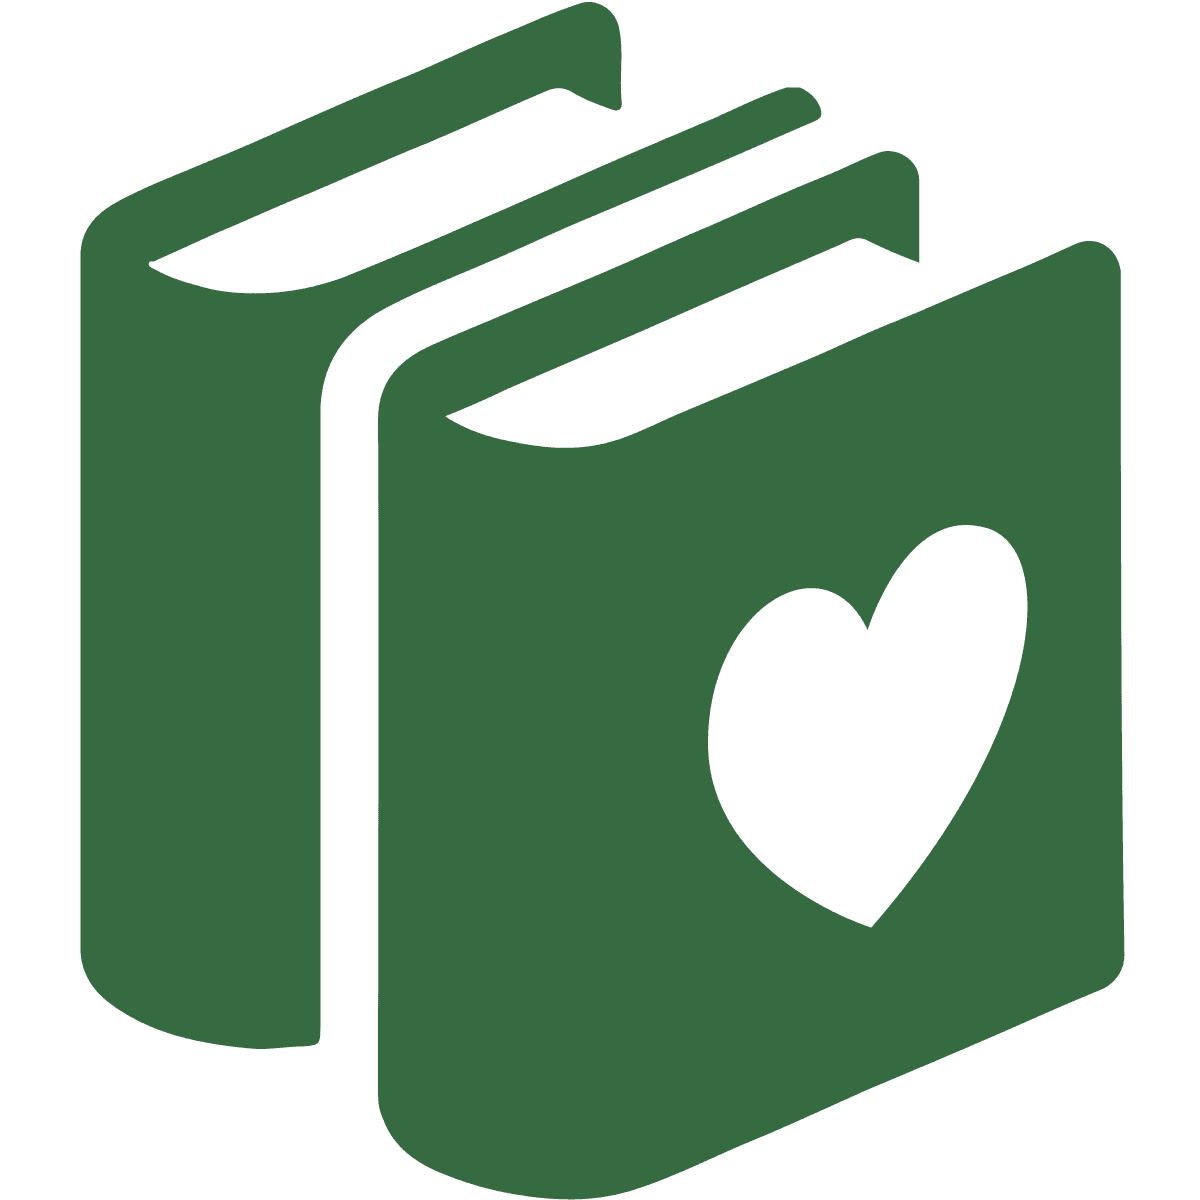 Two green books with a heart cut out of the center icon